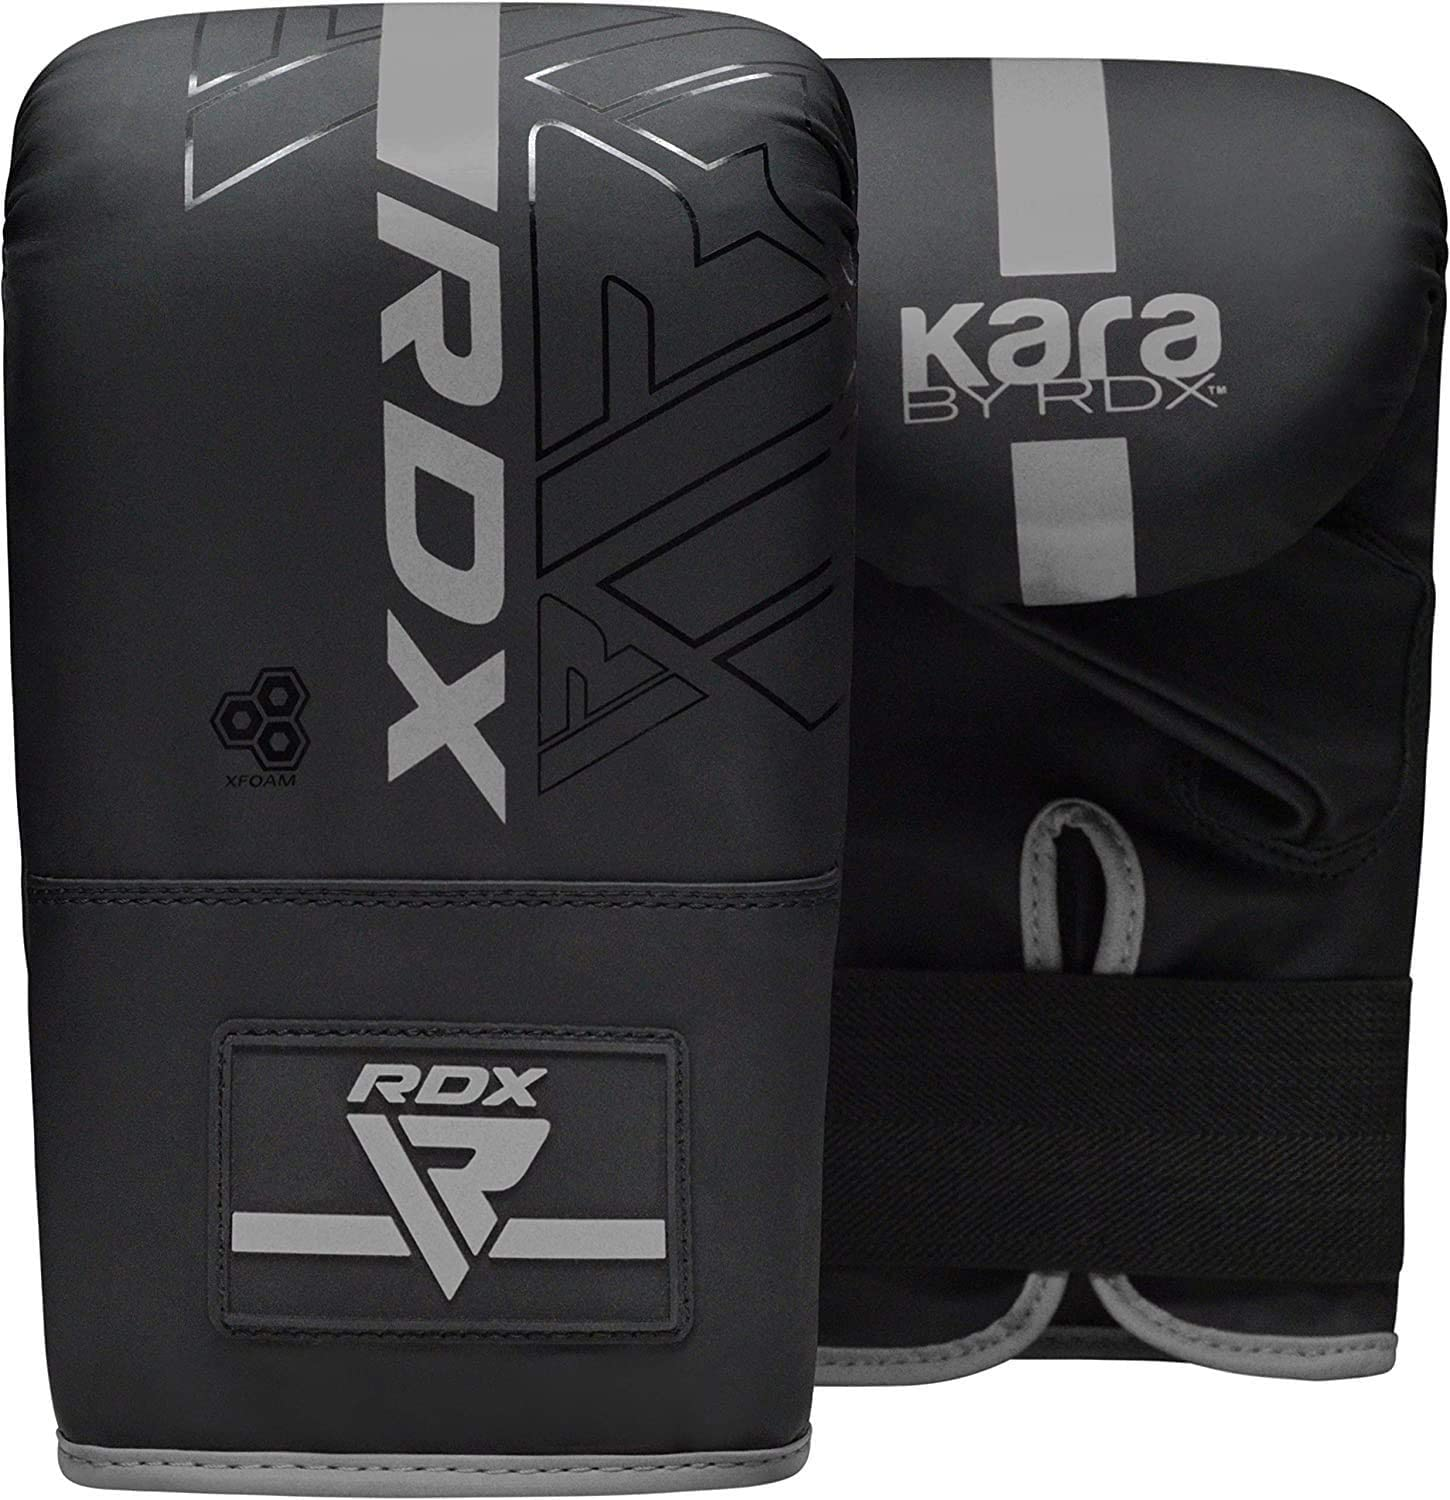 Kickboxing Boxing MMA Muay Thai Karate Training Workout Non Tear Maya Hide Leather Adult Bag with Ceiling Hook Punching Gloves Chain RDX 8PC Punch Bag 5ft 4ft Heavy Filled Set KARA Patent Pending